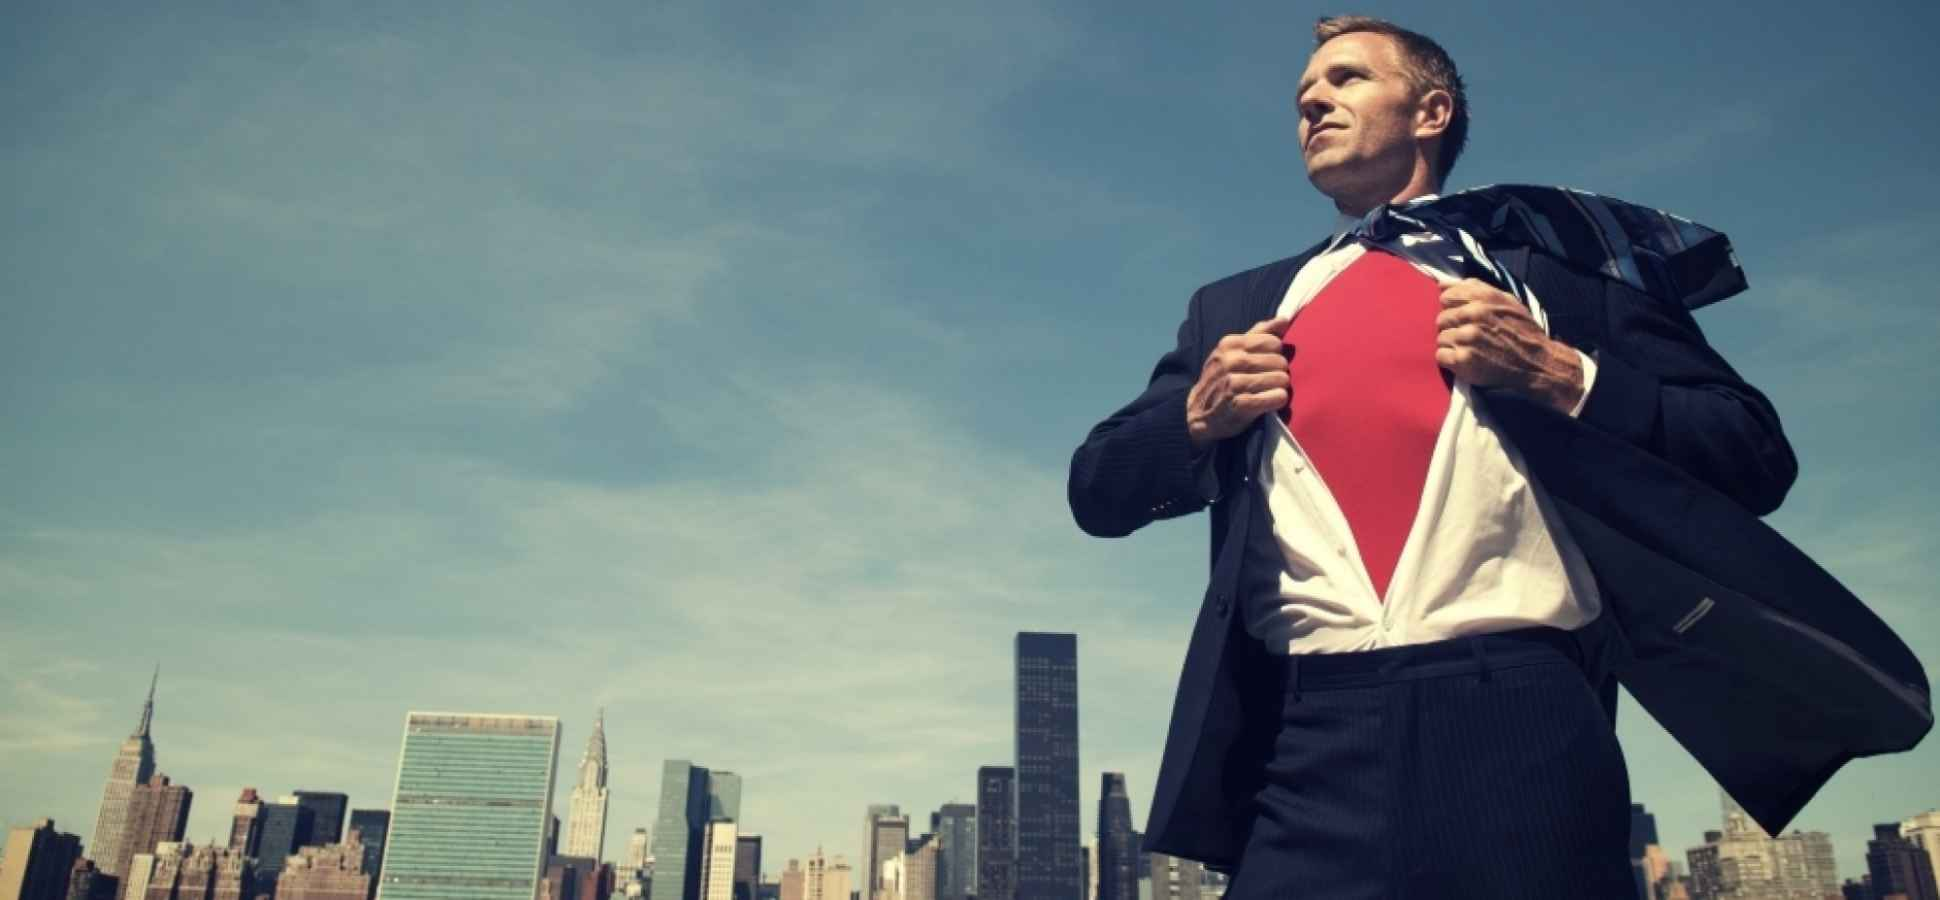 5 Surprising Research-Backed Ways to Increase Your Self-Confidence